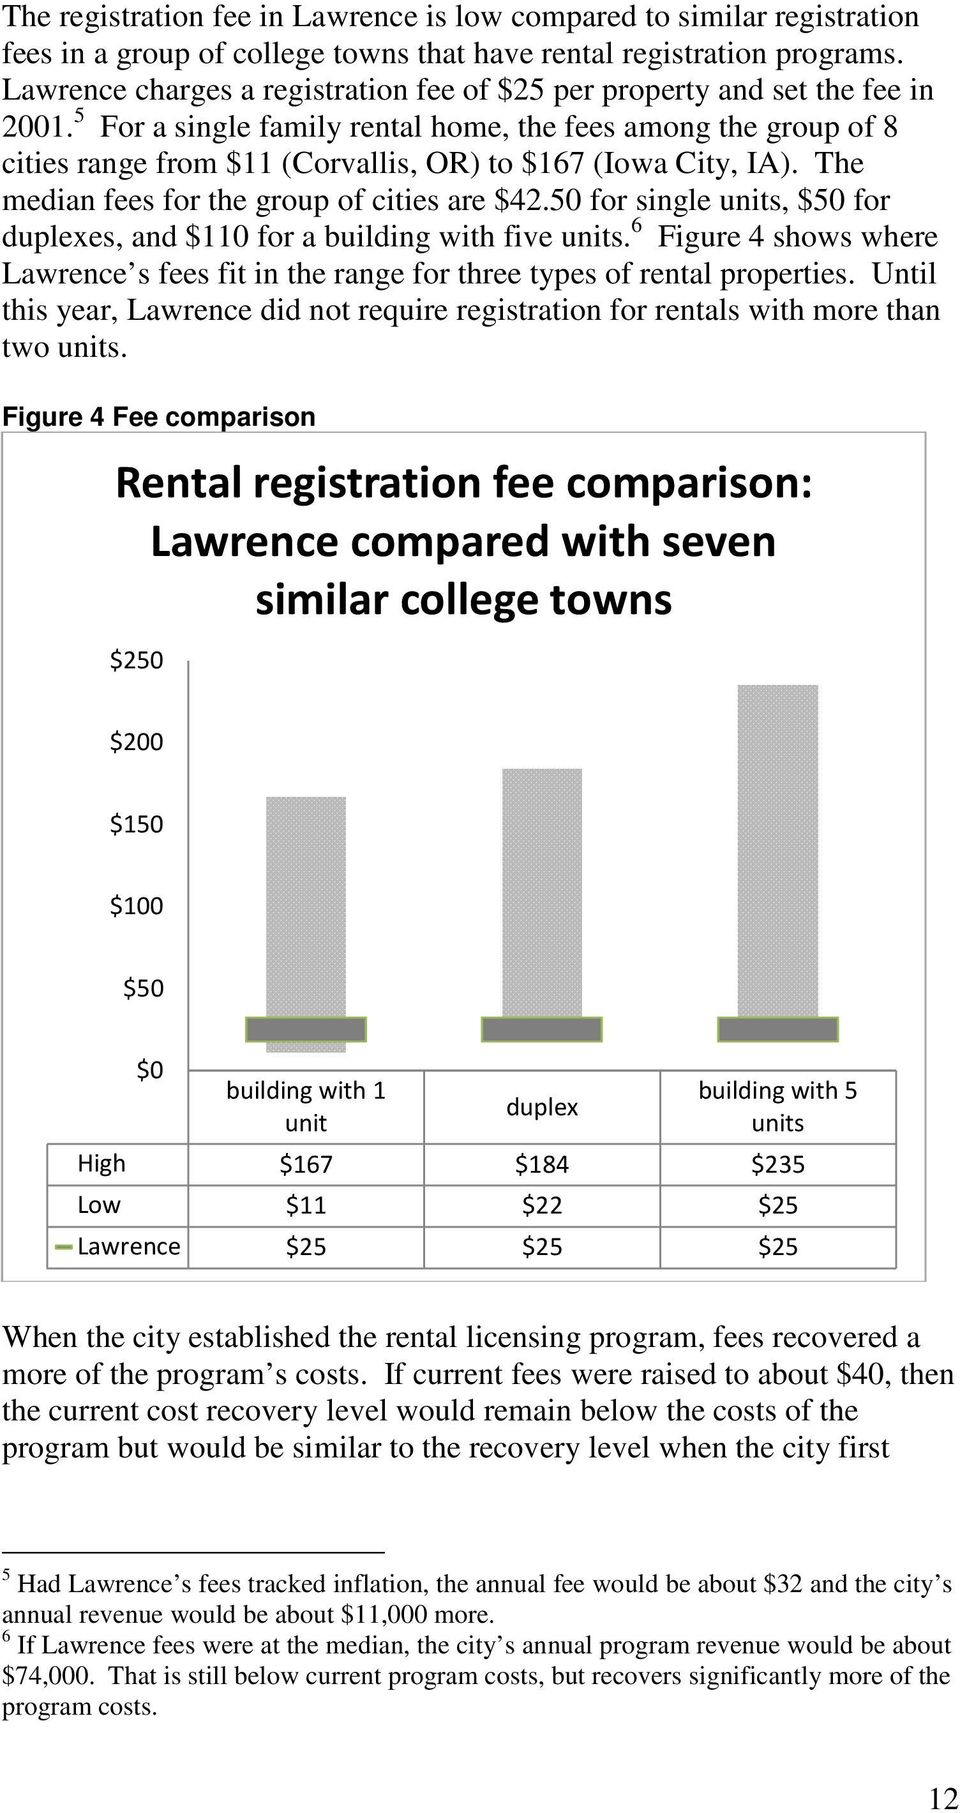 5 For a single family rental home, the fees among the group of 8 cities range from $11 (Corvallis, OR) to $167 (Iowa City, IA). The median fees for the group of cities are $42.